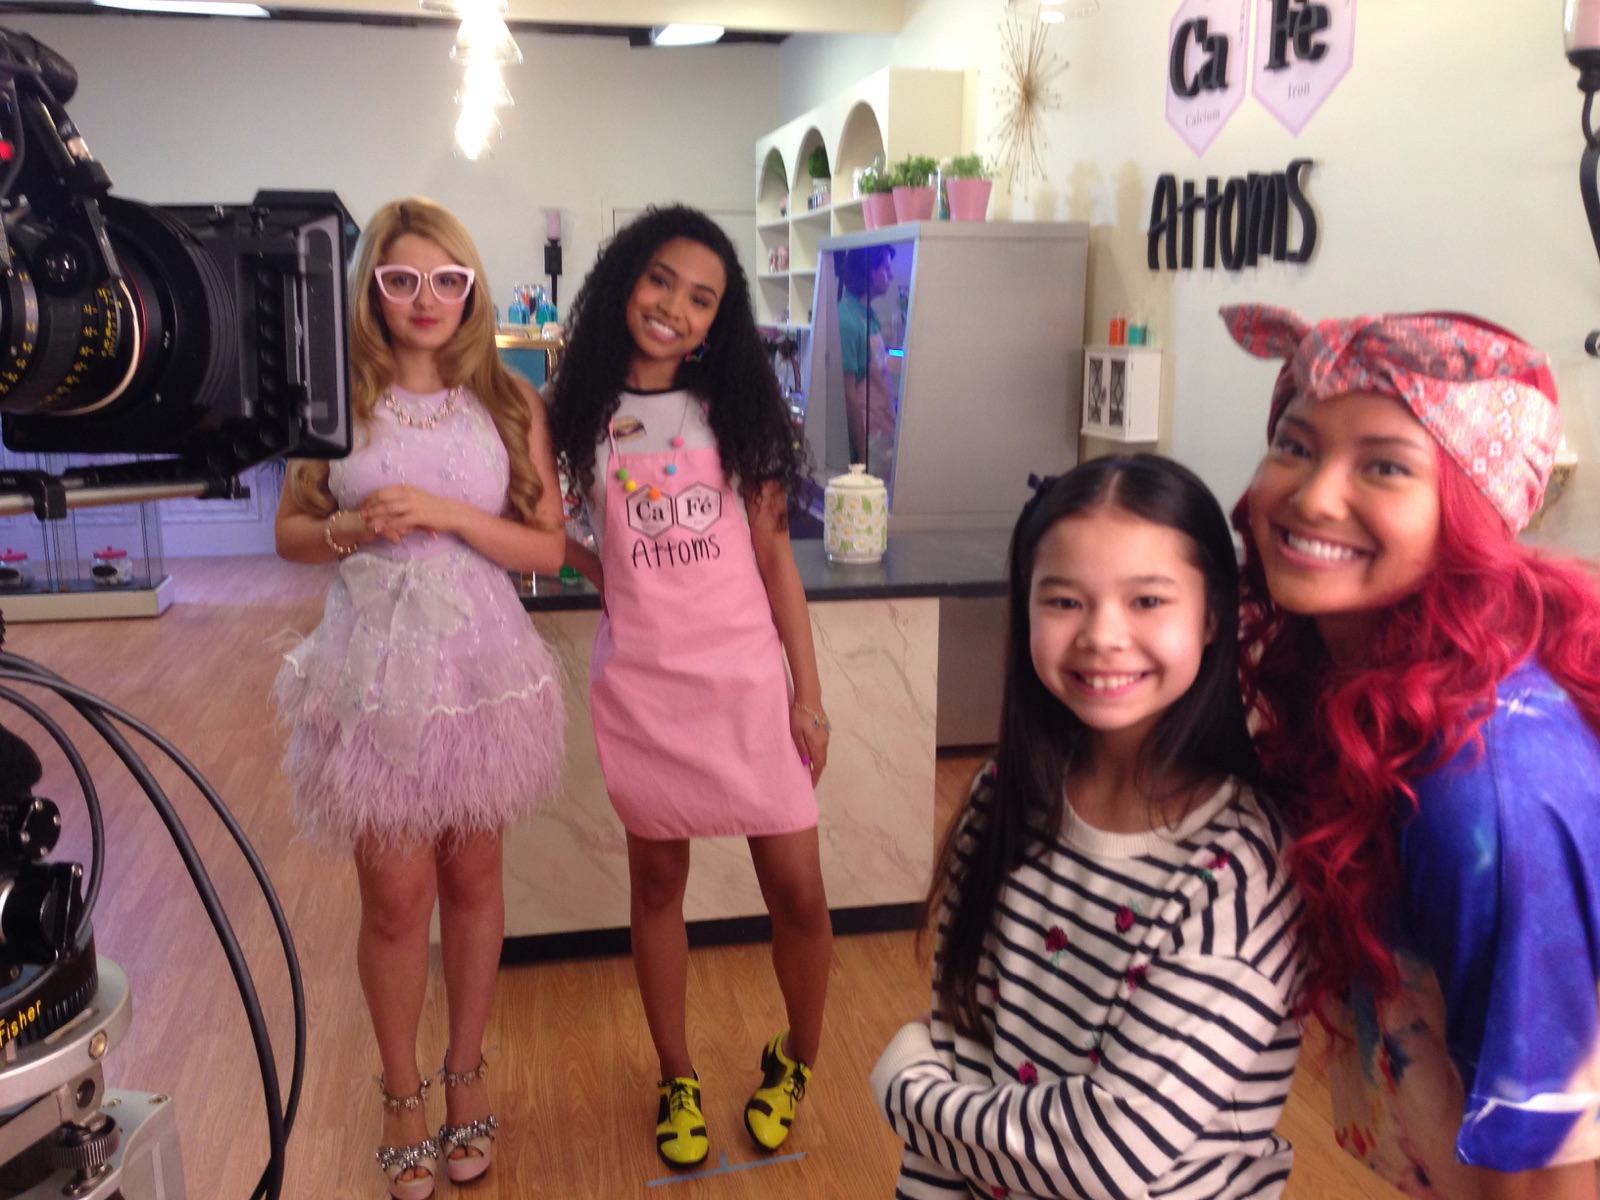 On Set with the Ladies of Project MC2